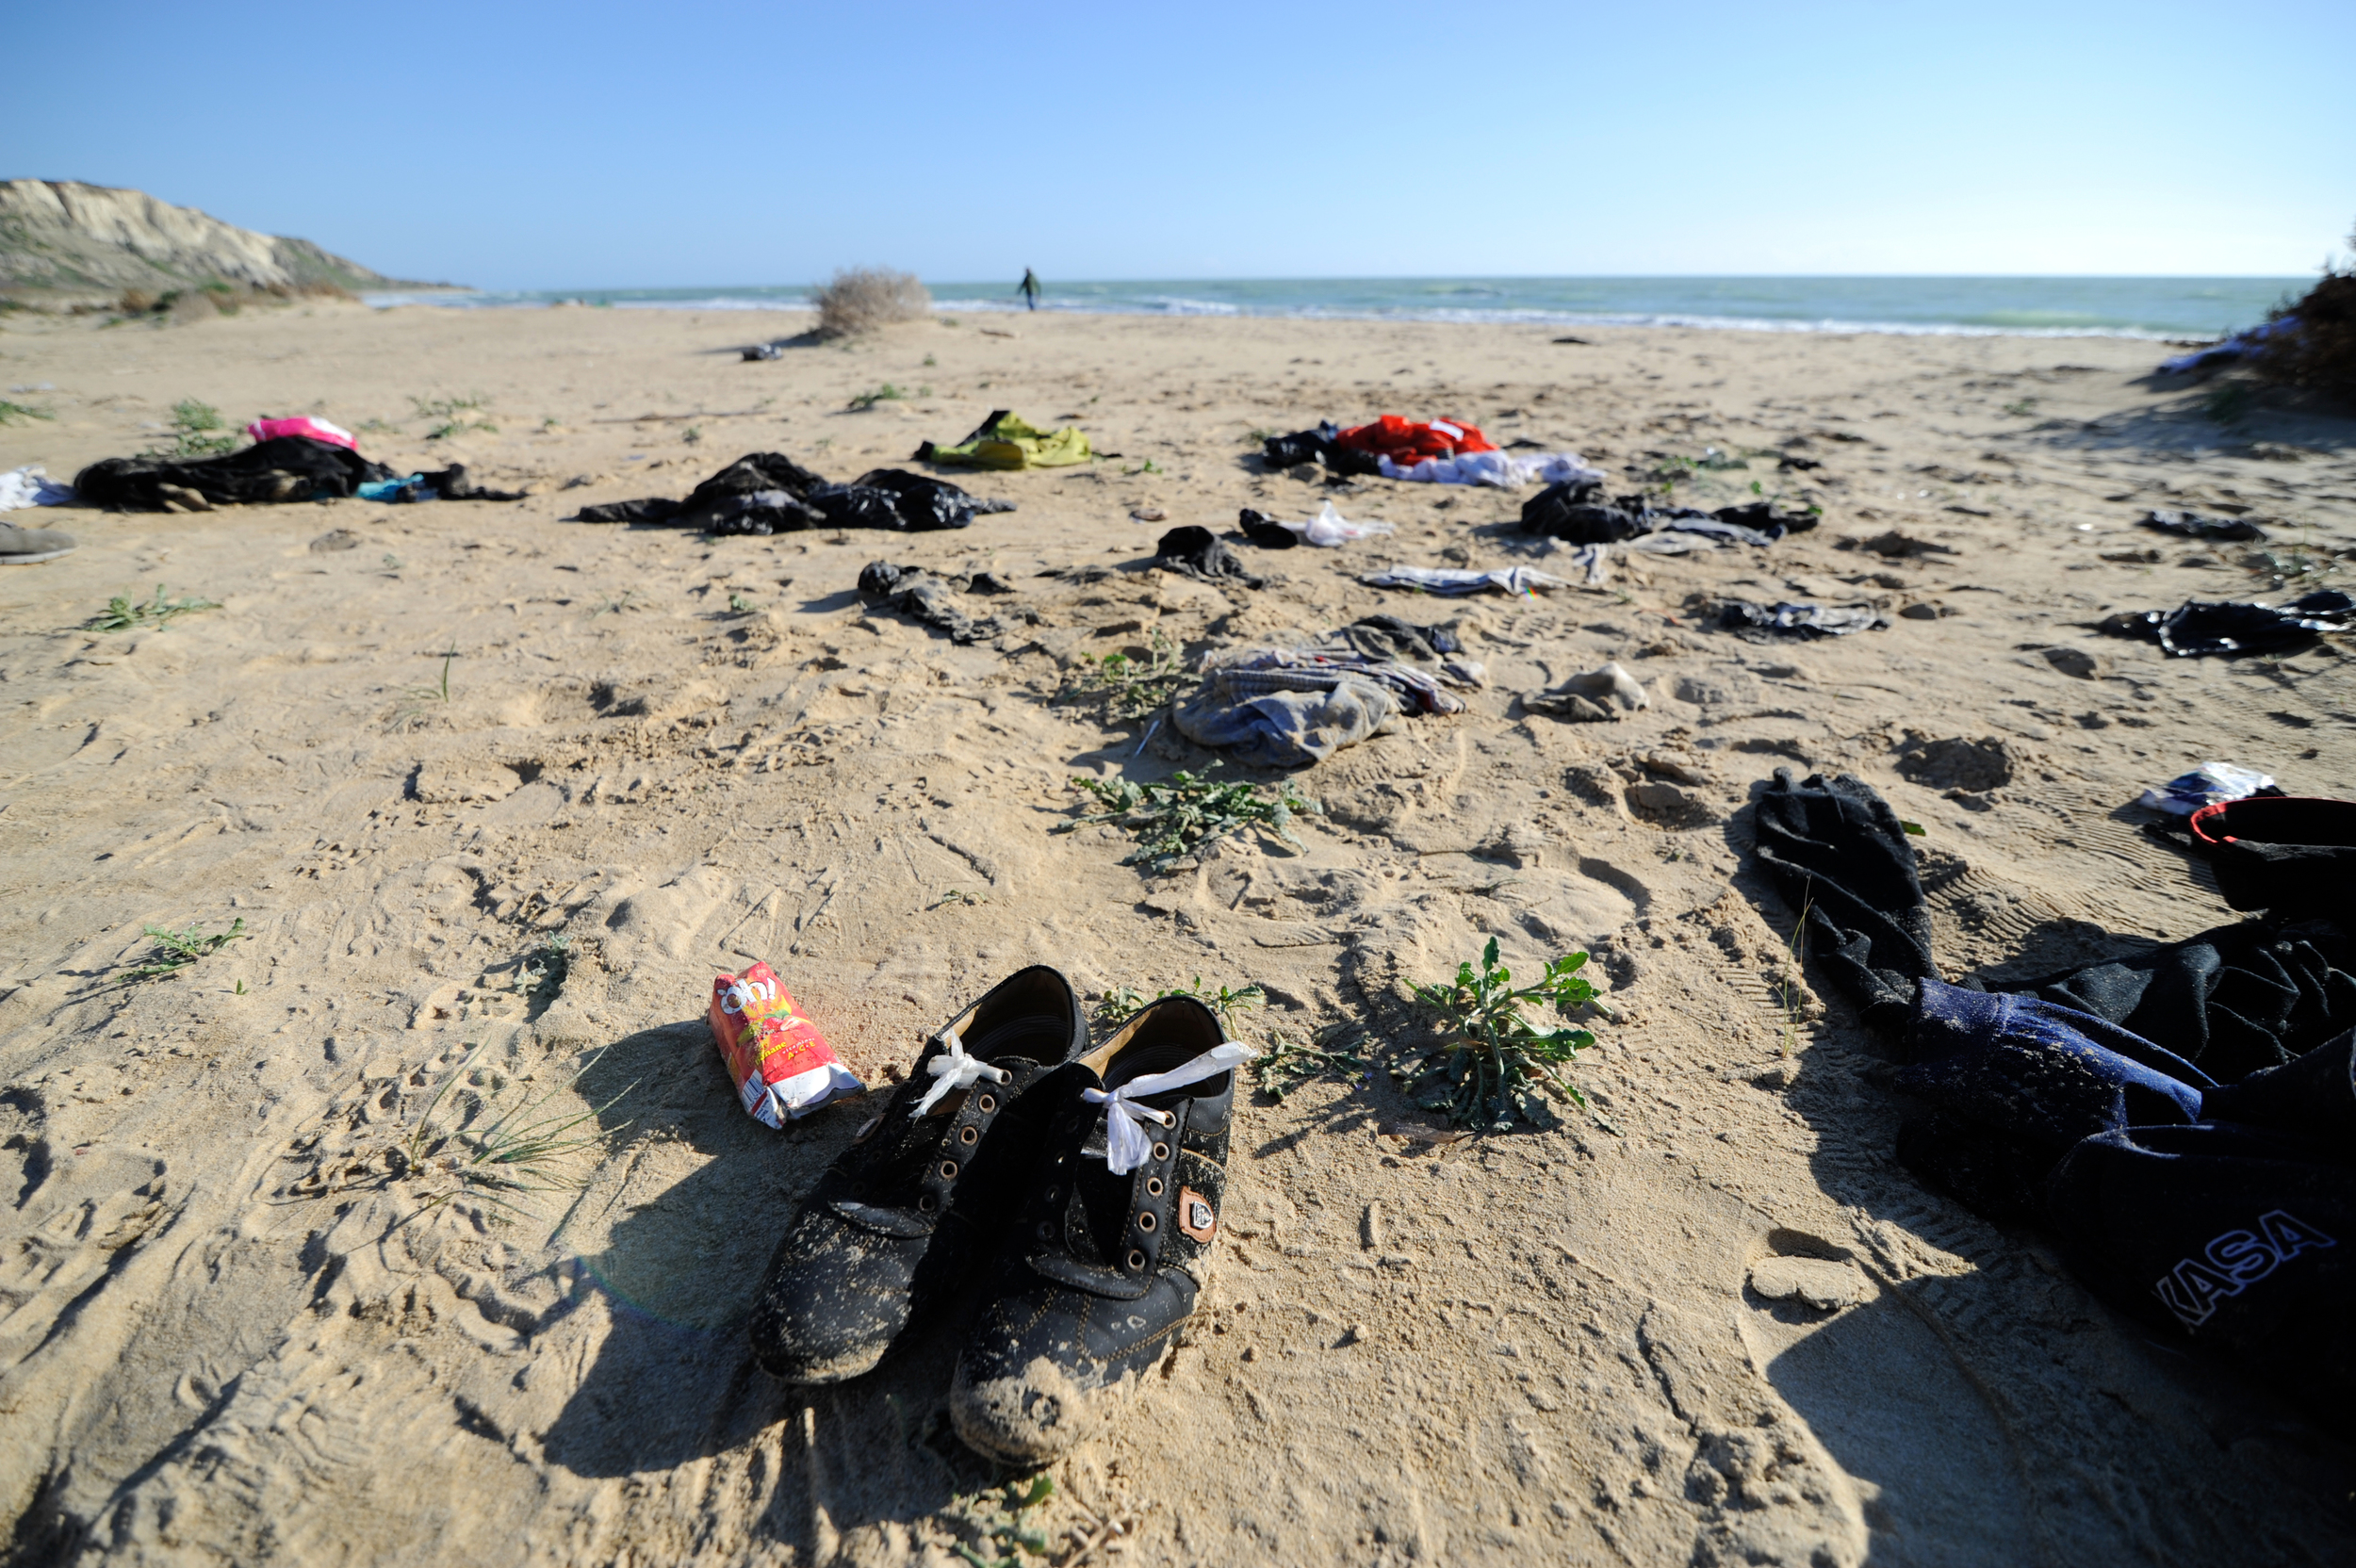 Clothes belonging to migrants lie on the Sicilian beach of Siculiana, Italy February 19, 2016.